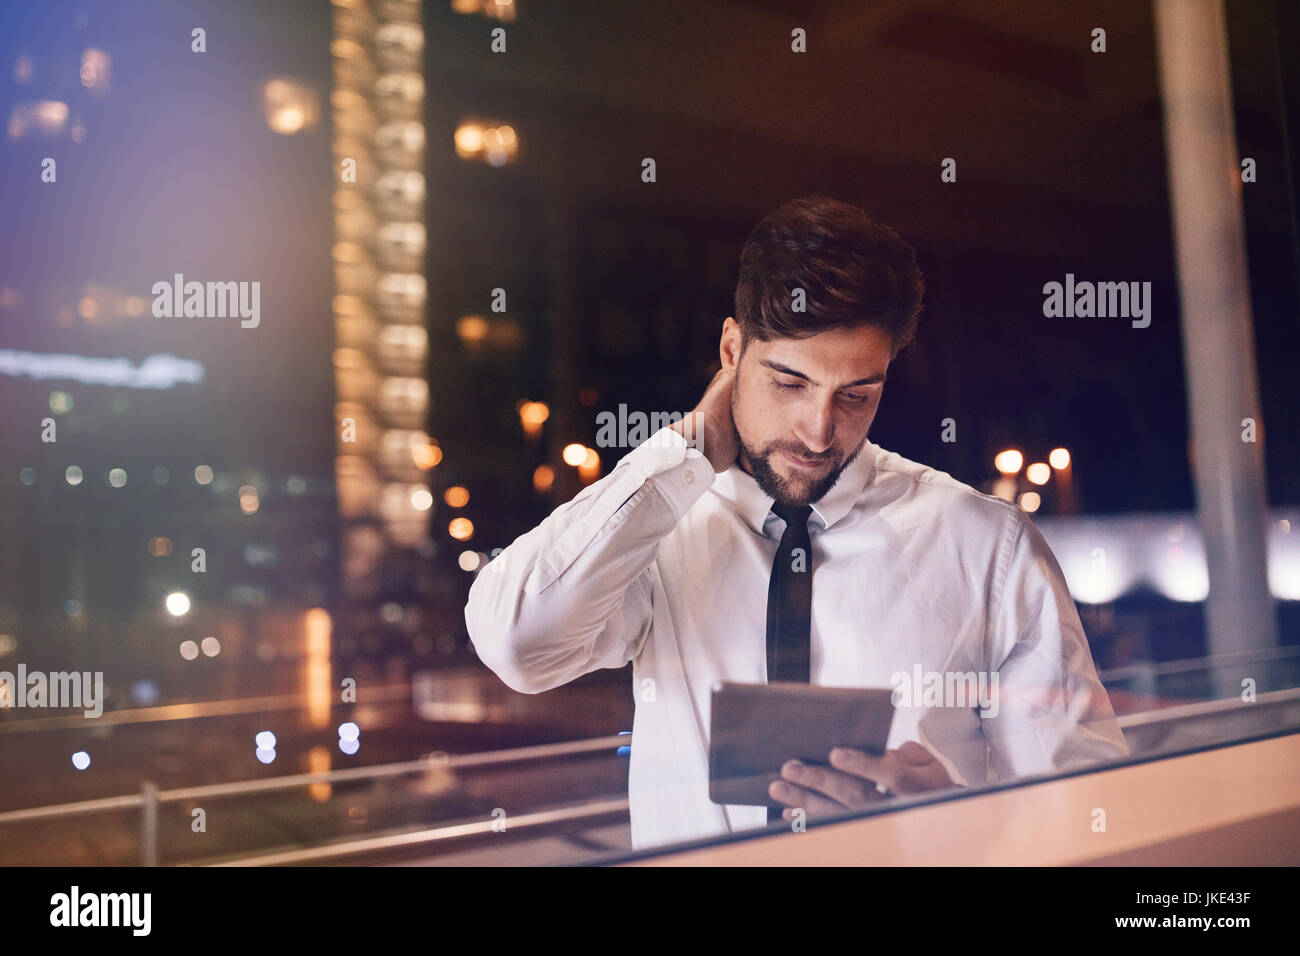 Airport lounge. Businessman inside the airport terminal using digital tablet. Handsome male executive waiting at - Stock Image